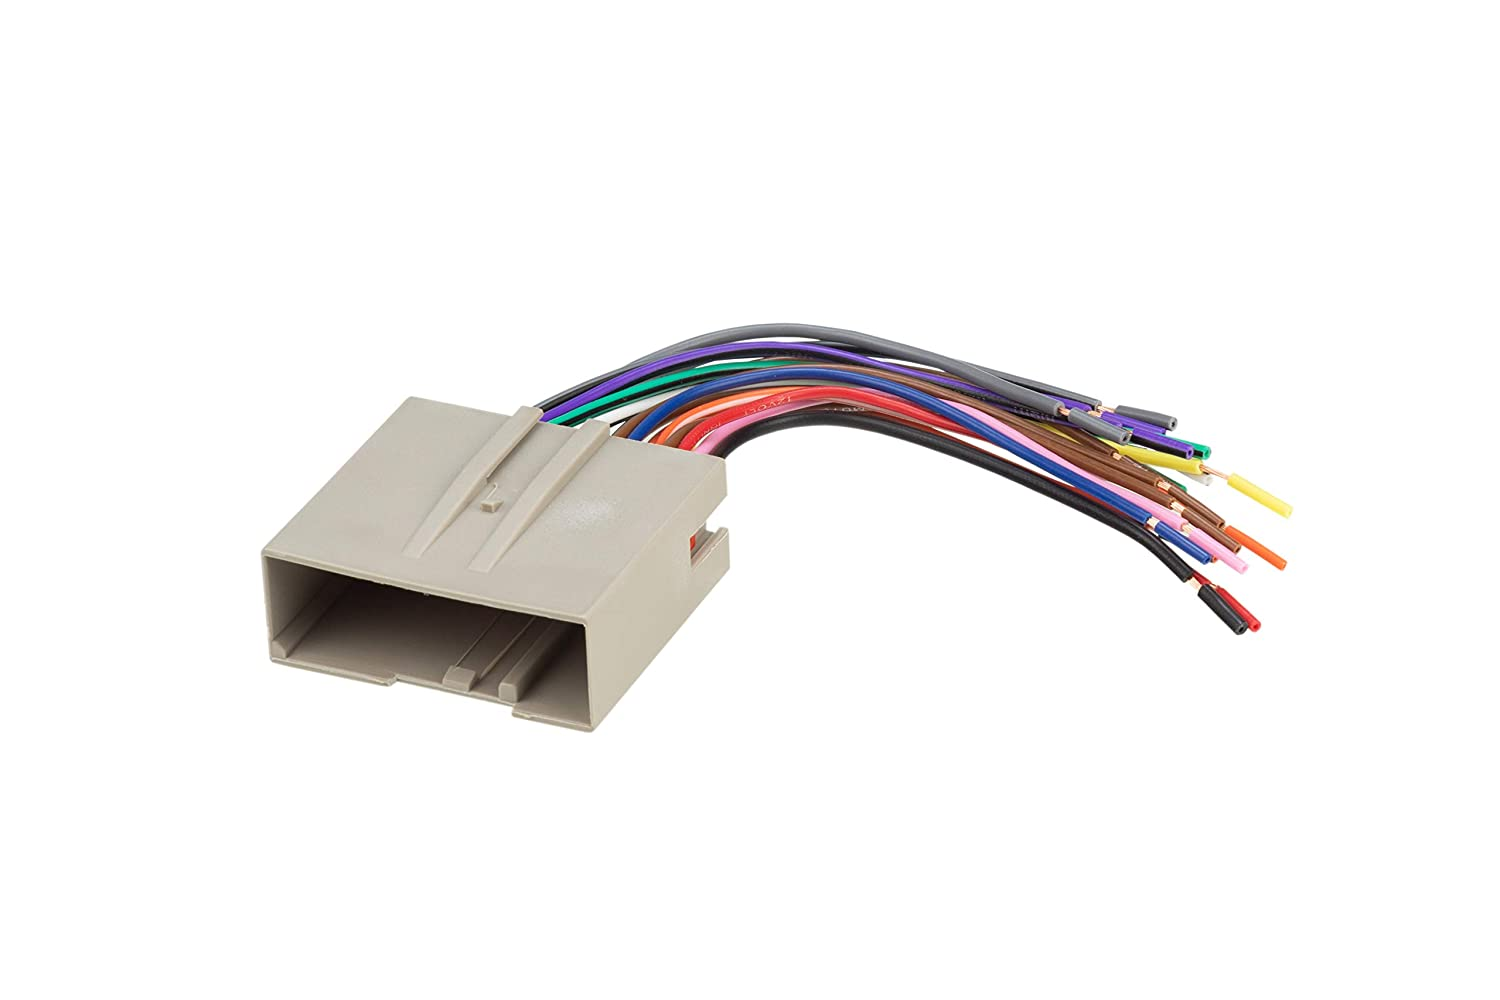 amazon com: scosche fd23b car speaker wiring harness connector kit  compatible with select 2003-up ford vehicles: car electronics